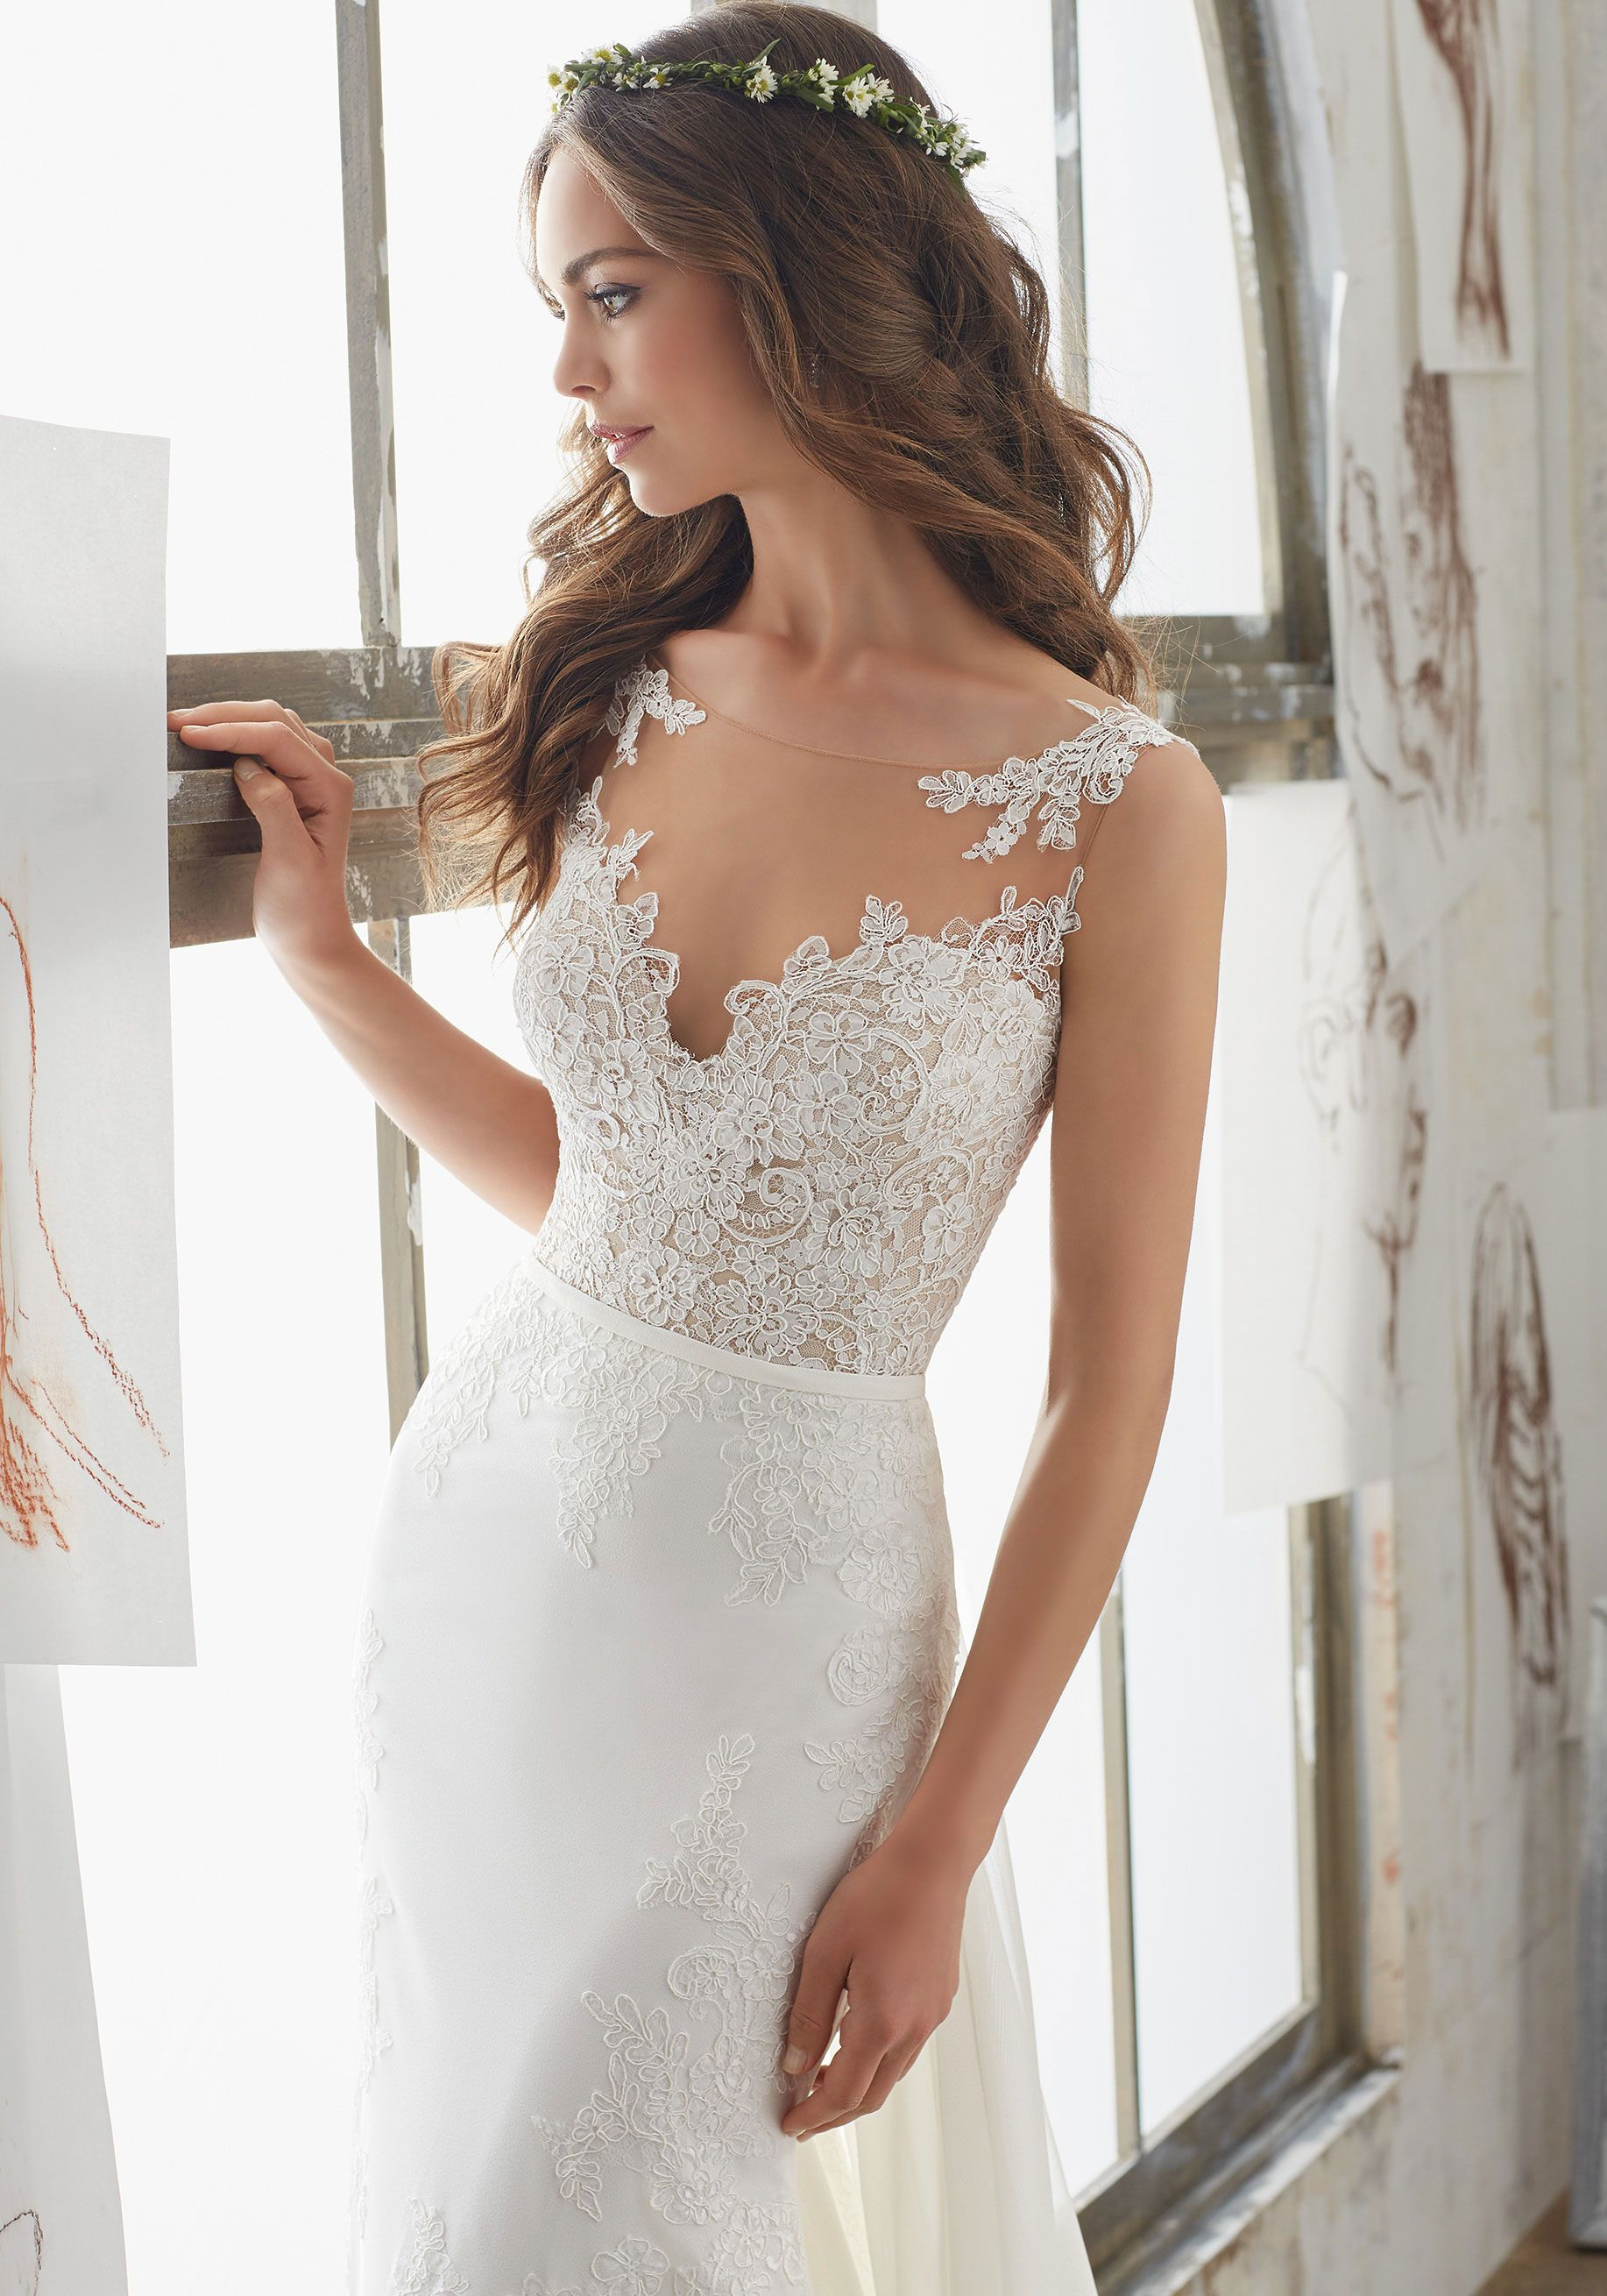 2017 wedding dresses and bridal gowns by morilee by madeline gardner 2017 wedding dresses and bridal gowns by morilee by madeline gardner this sheath bridal gown has lace appliqus detachable train and illusion neckline junglespirit Choice Image